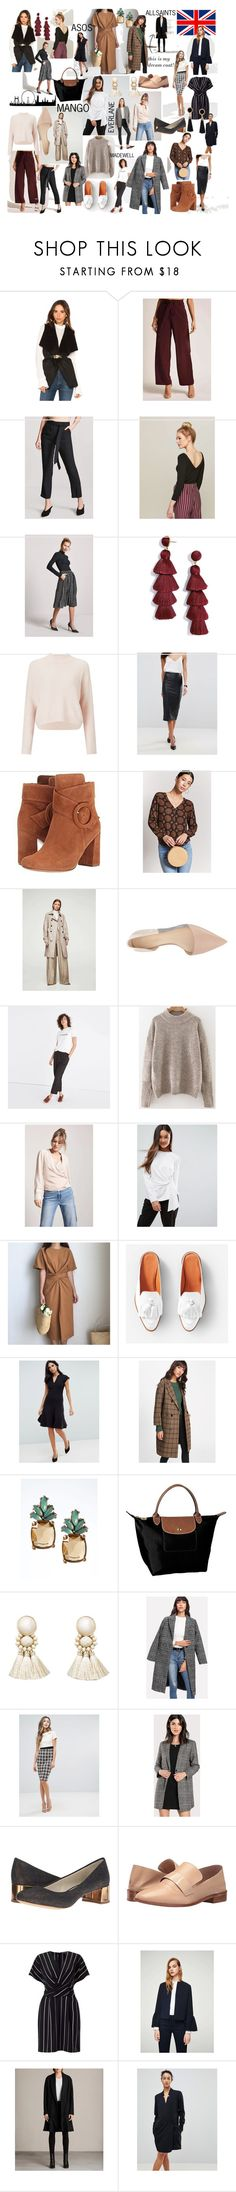 """Becka's London work edit leftovers"" by charlotteanndove on Polyvore featuring cupcakes and cashmere, Forever 21, Love 21, BaubleBar, Miss Selfridge, ASOS, MANGO, Nine West, Madewell and Y.A.S"